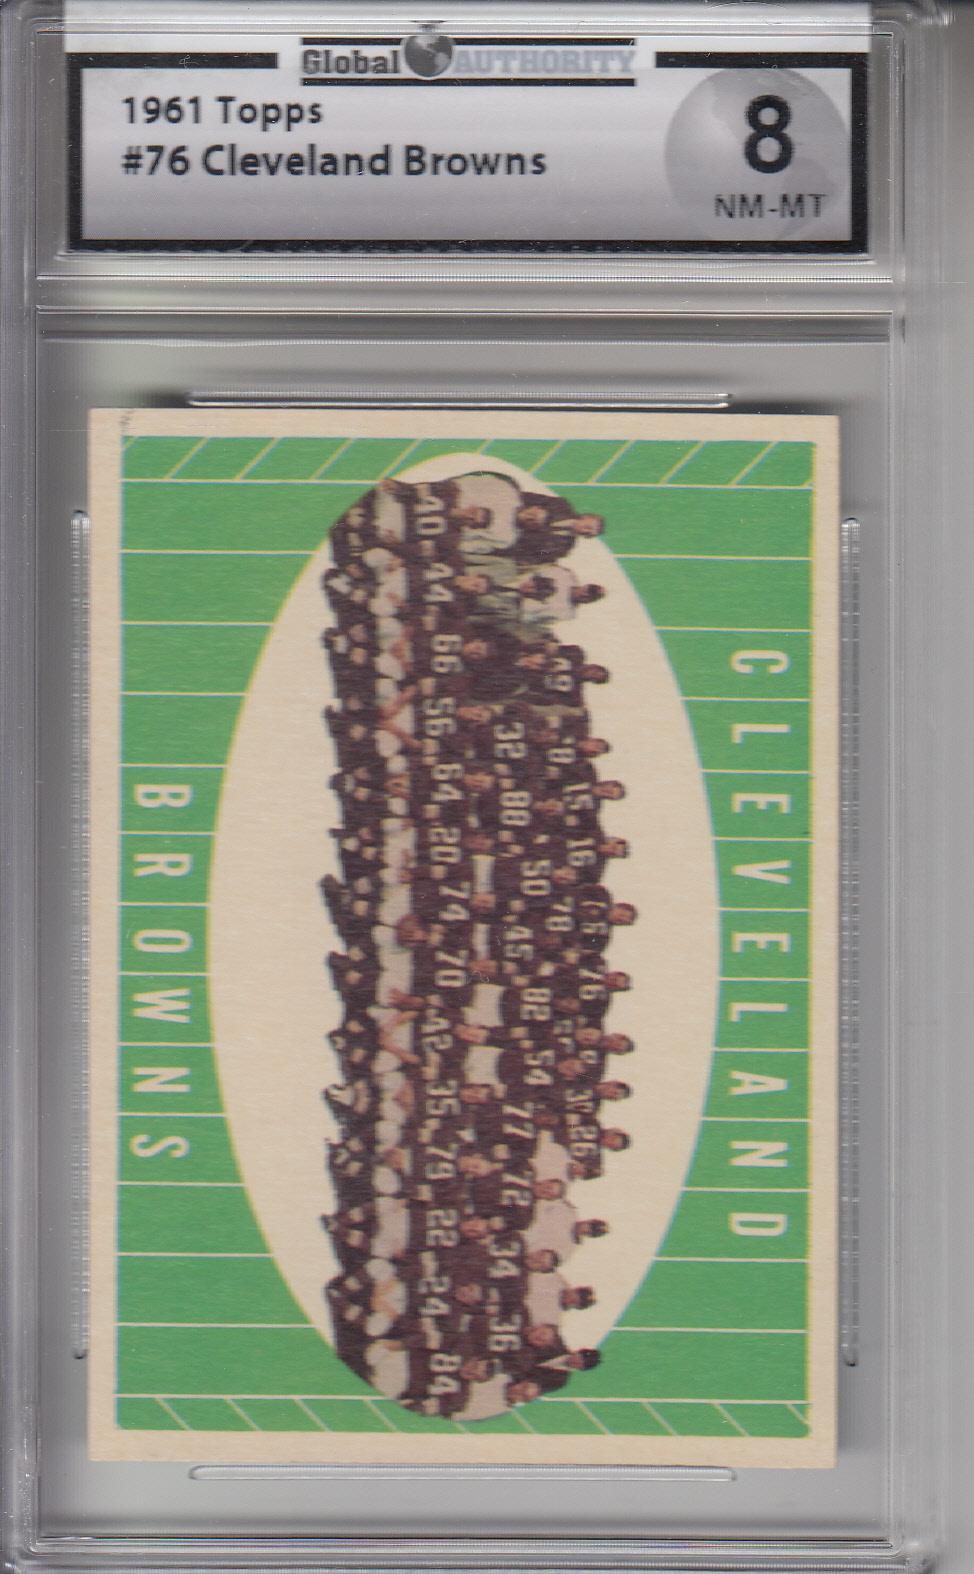 1961 Topps #76 Cleveland Browns BROWNS GAI 8 NM-MT Z20439